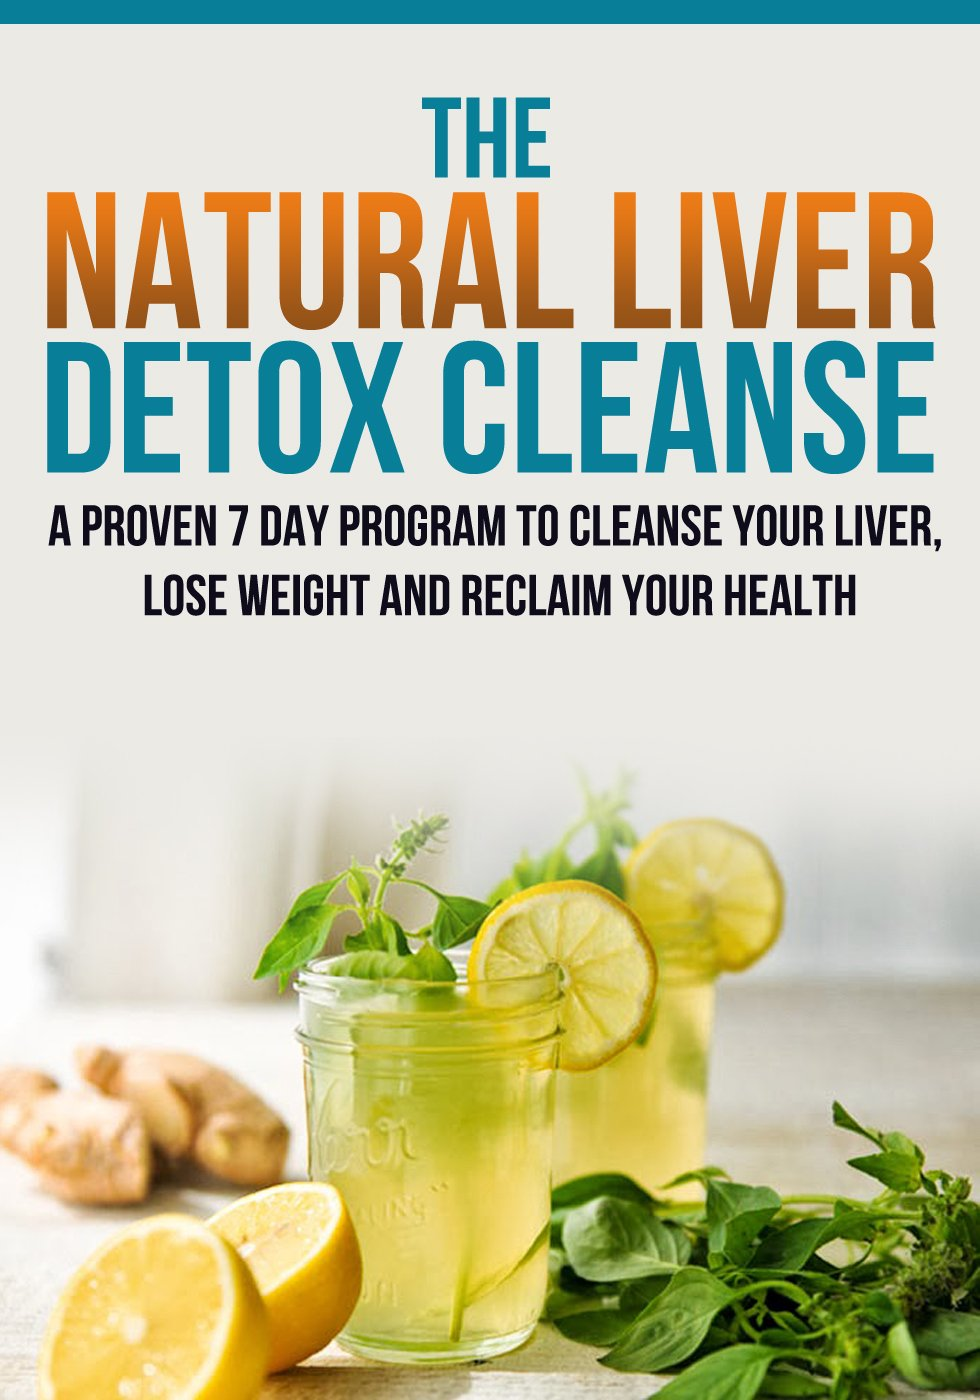 Liver Detox Cleanse  The Natural Liver Detox Cleanse A Proven 7 Day Program To Cleanse Your Liver Lose Weight And Reclaim Your Health.  English Edition